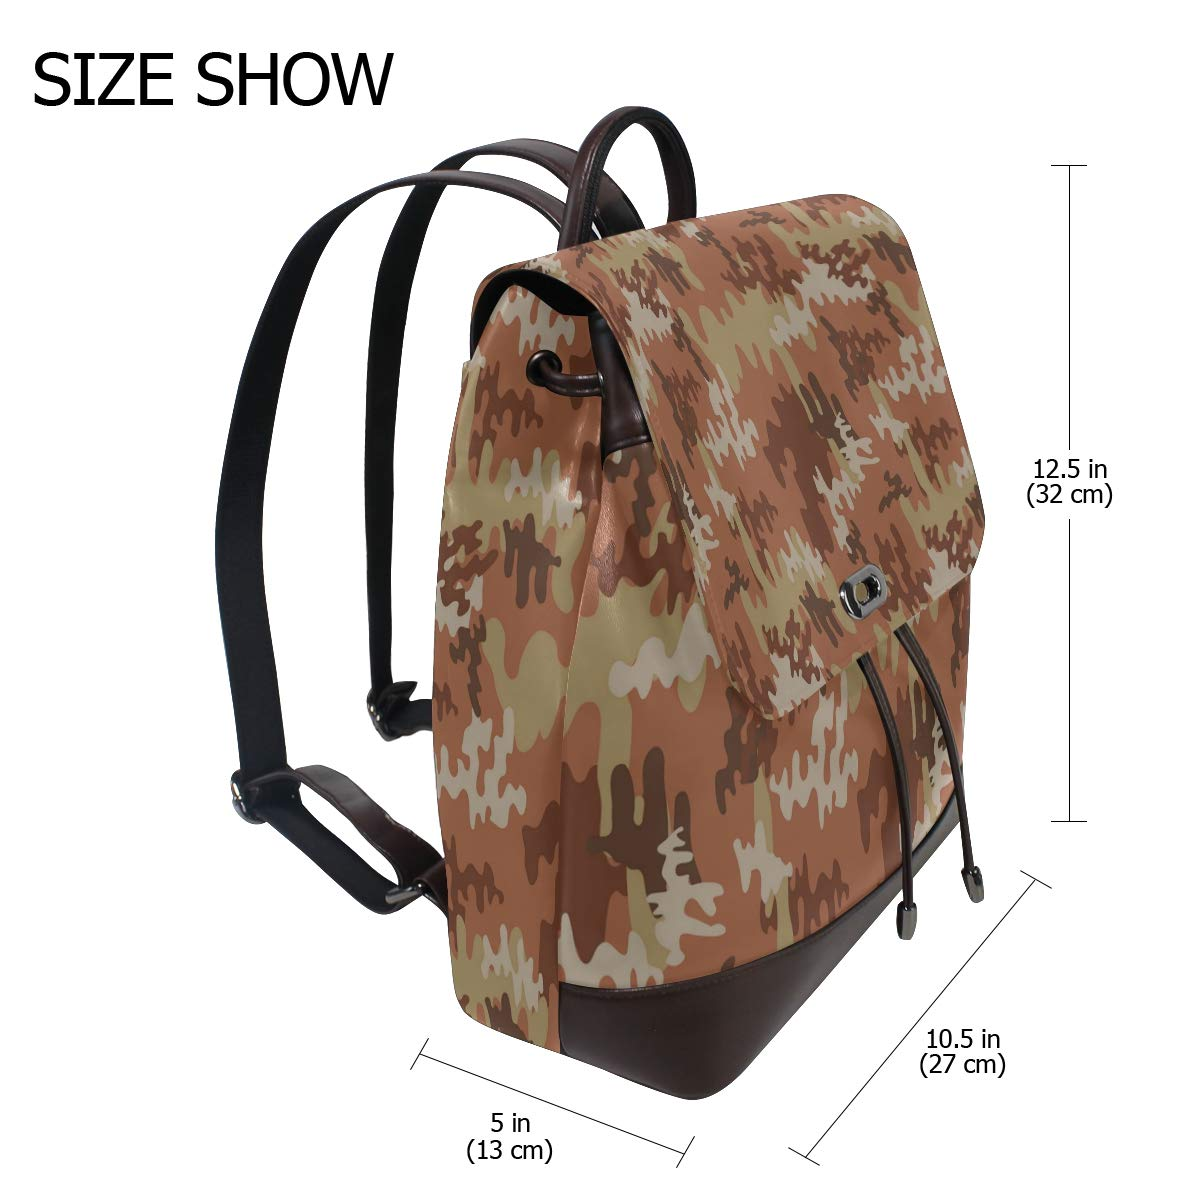 Unisex PU Leather Backpack Red Army Fashion Camo Print Womens Casual Daypack Mens Travel Sports Bag Boys College Bookbag